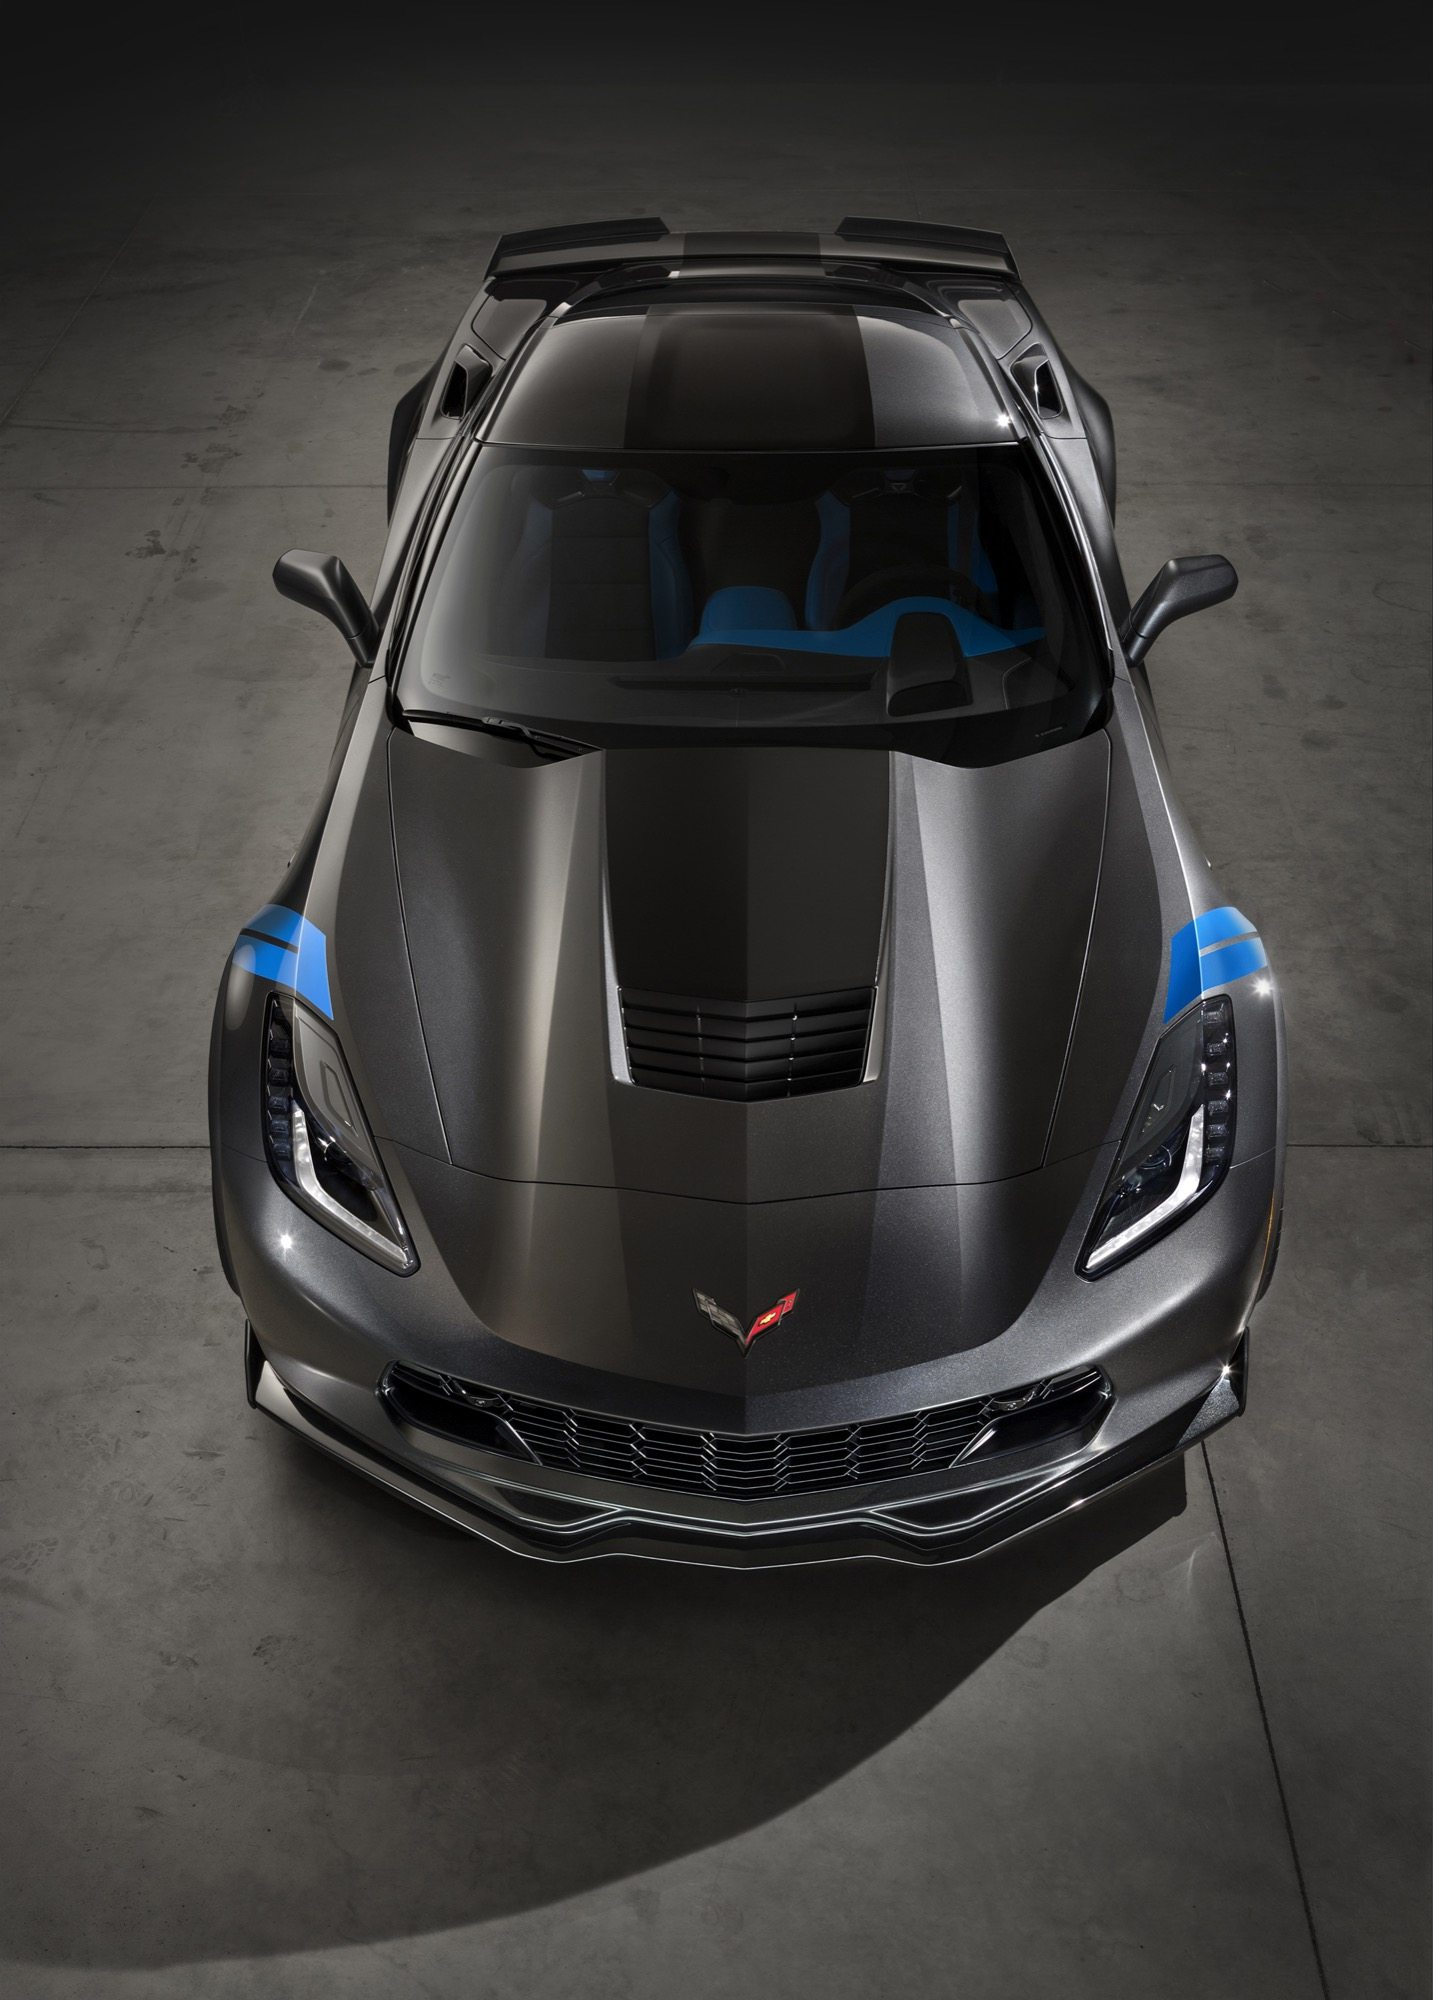 2017 Corvette Stingray